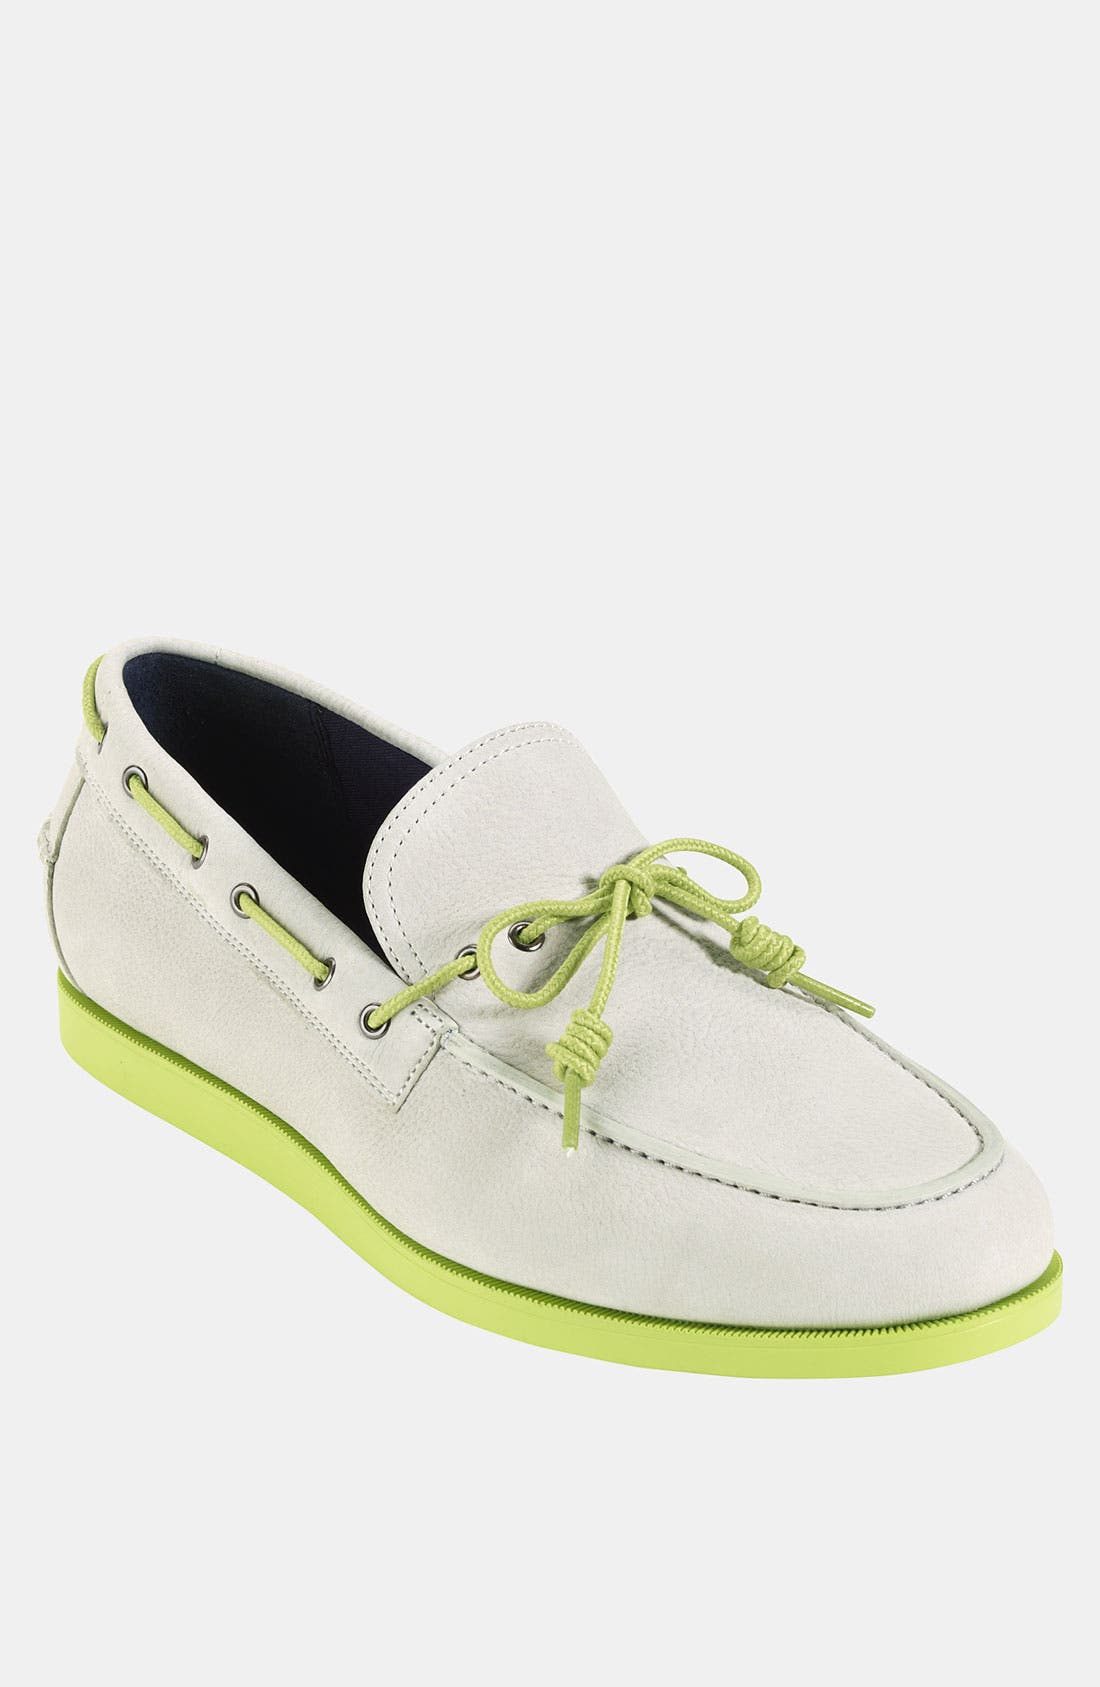 Alternate Image 1 Selected - Cole Haan 'Air Mason' Boat Shoe   (Men)